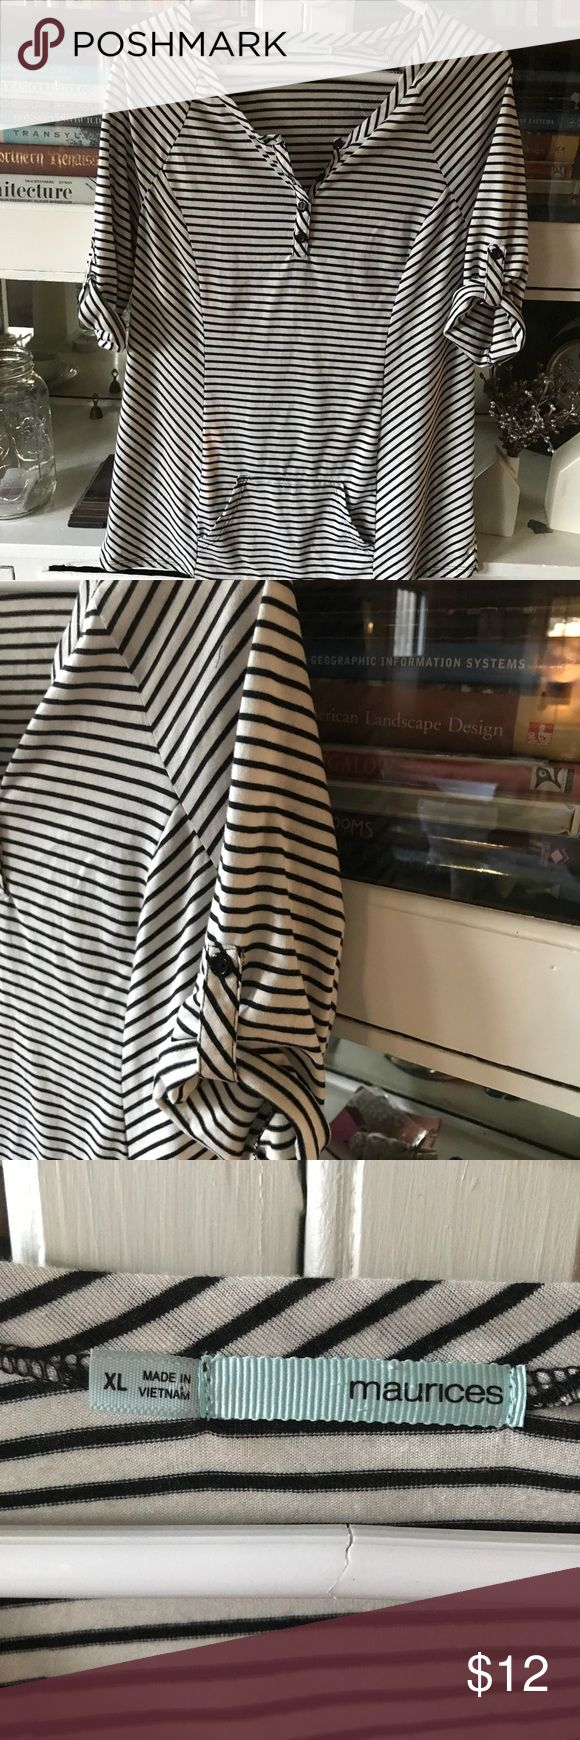 Black and White Striped Shirt! Maurice's XL black and white striped shirt. Cute roll up sleeves with button tab stay. Sweatshirt pocket on the front.  Make me an offer!! Maurices Tops Tees - Long Sleeve